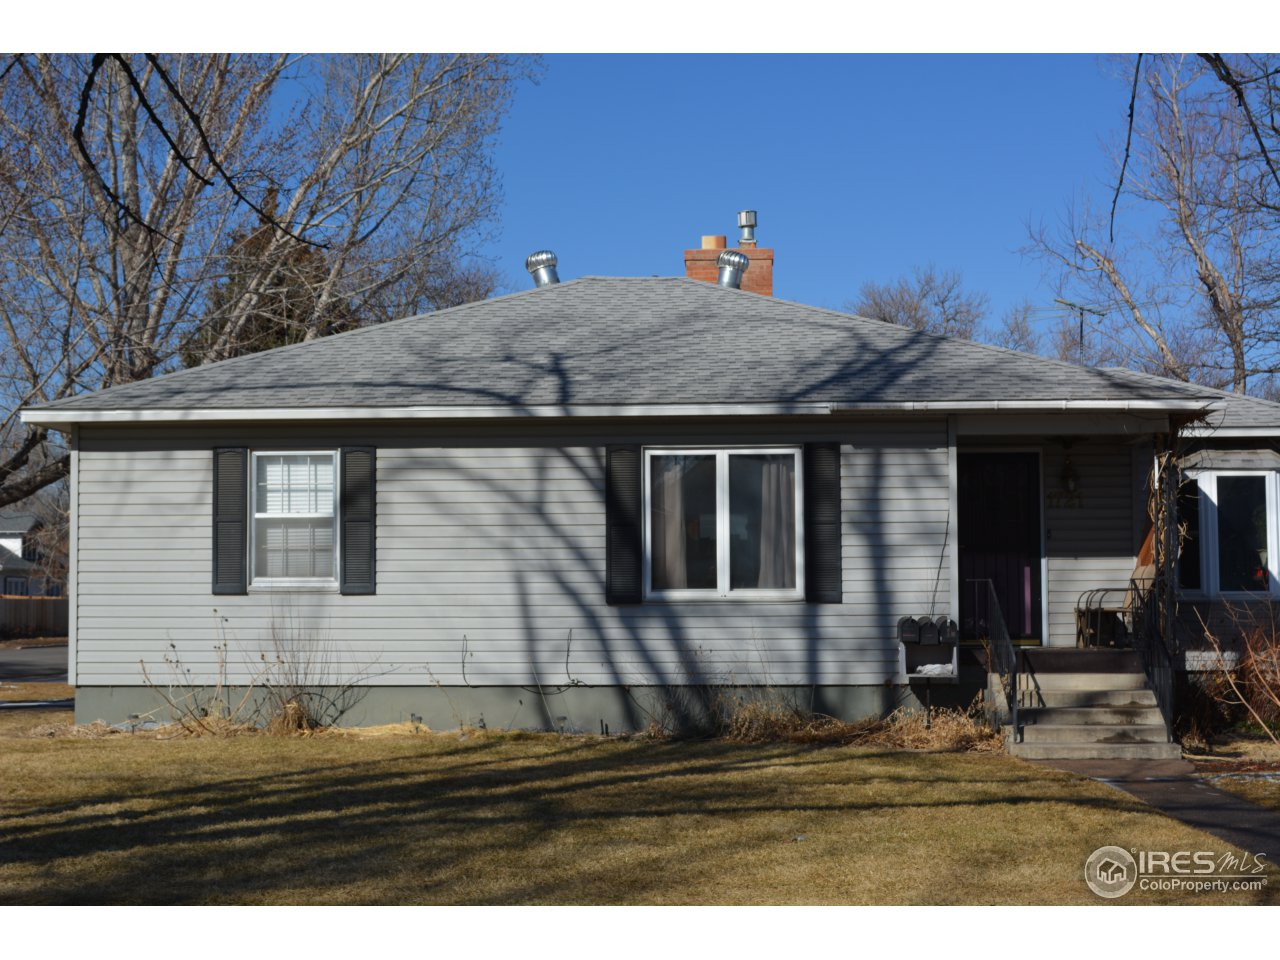 1721 12TH ST, GREELEY, CO 80631